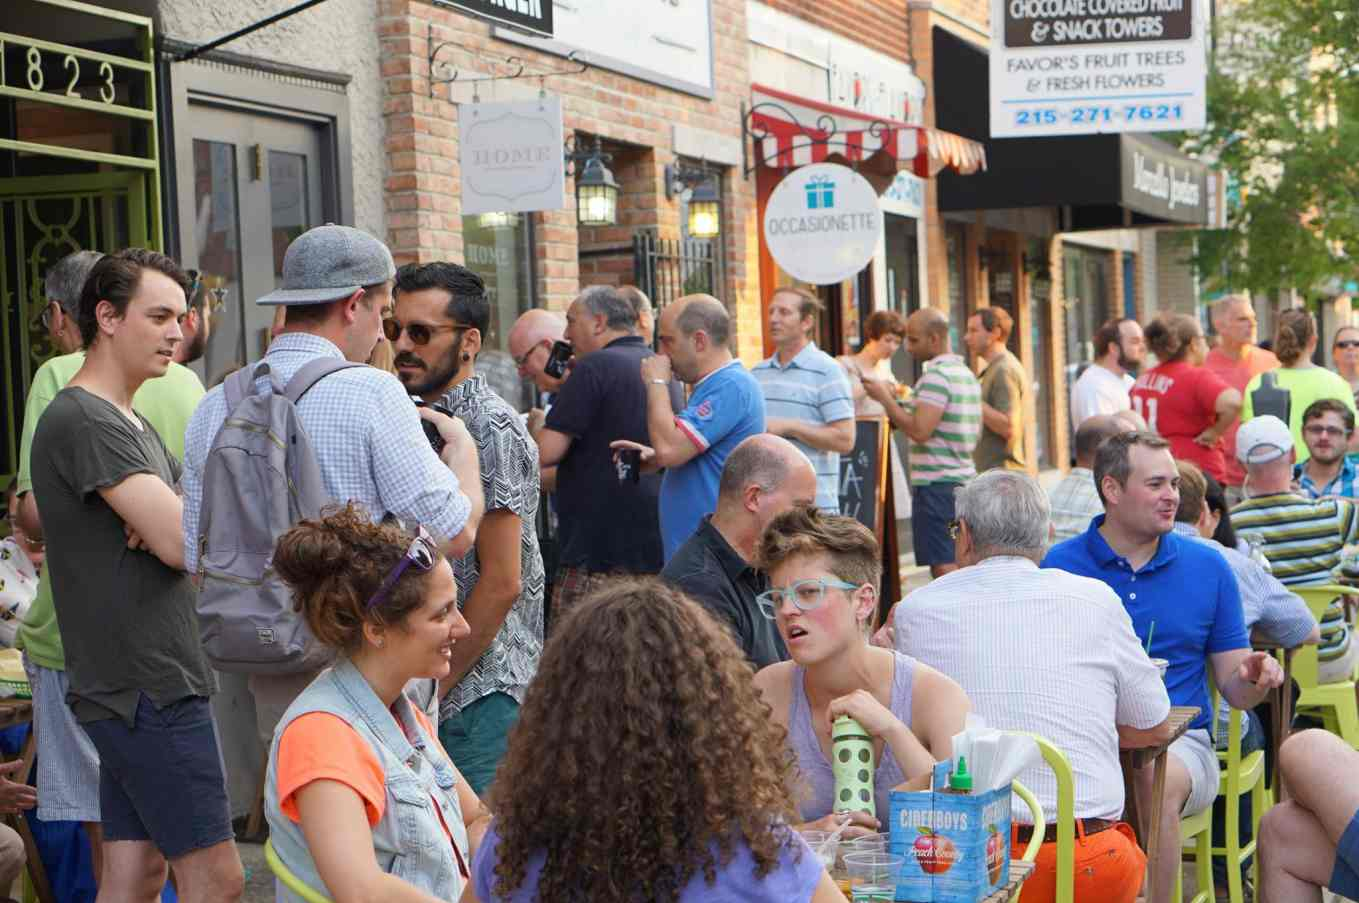 East Passyunk Hosts New Flavors Street Festival With 27 Award